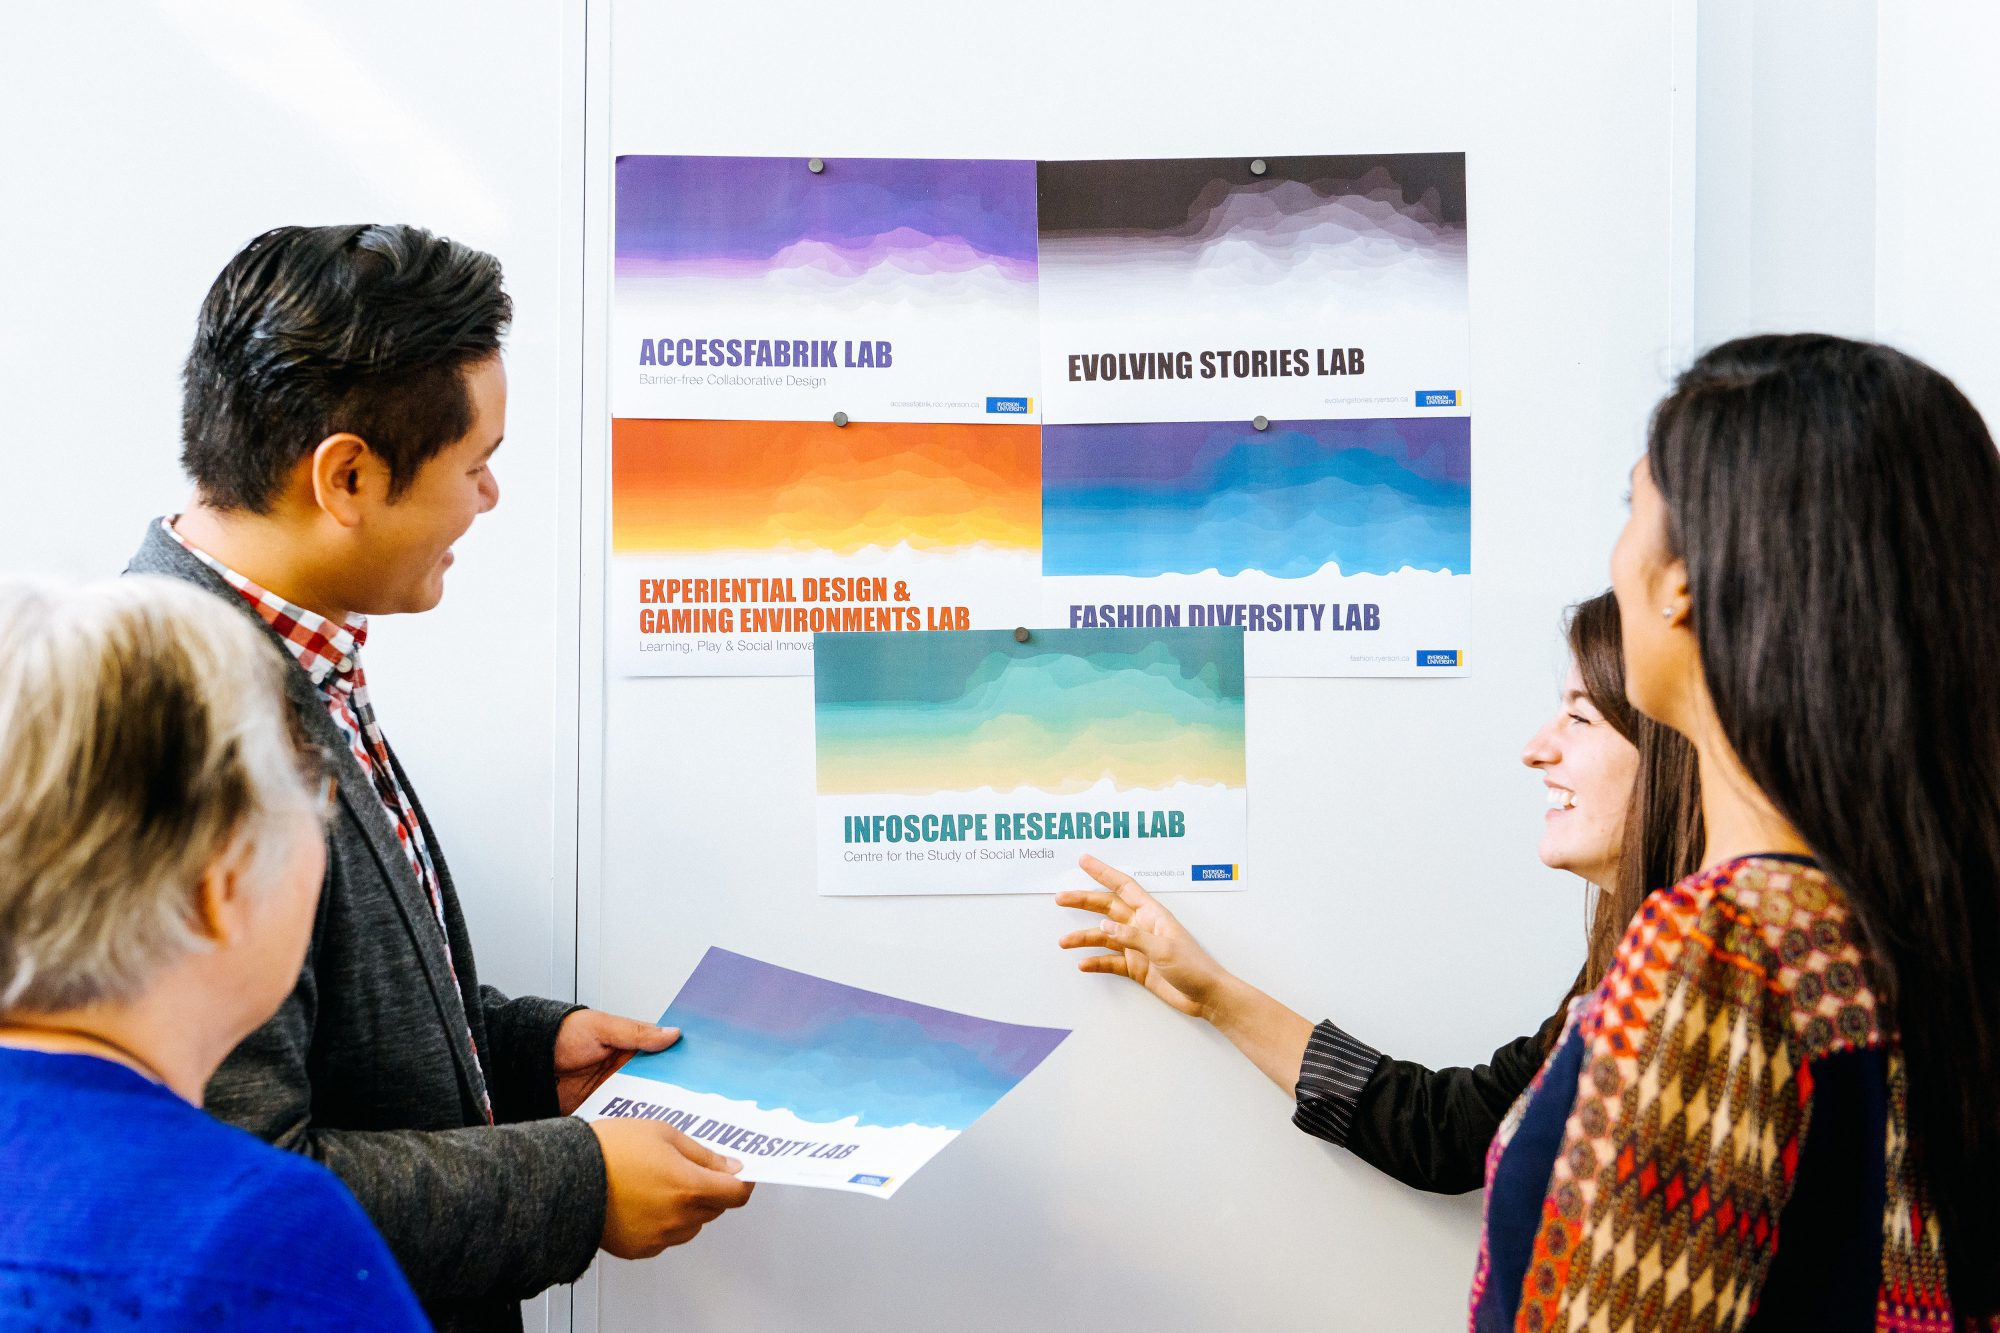 CCK employees looking at designs on a whiteboard